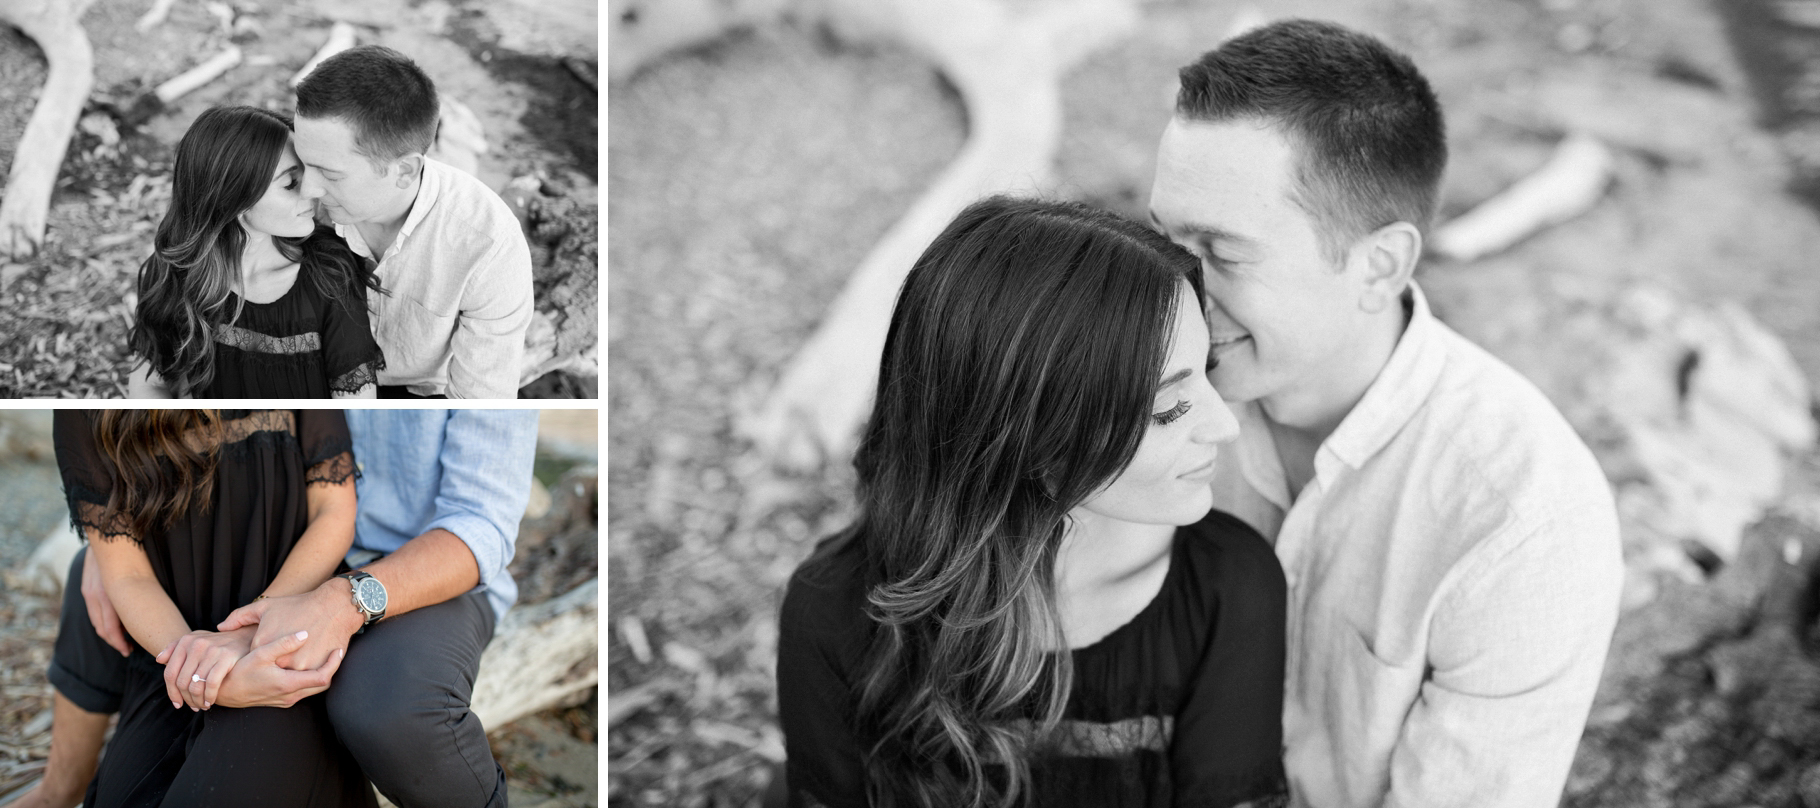 Discovery-Park-Seattle-Engagment-Photographer-Wedding-Photography-by-Betty-Elaine_0017